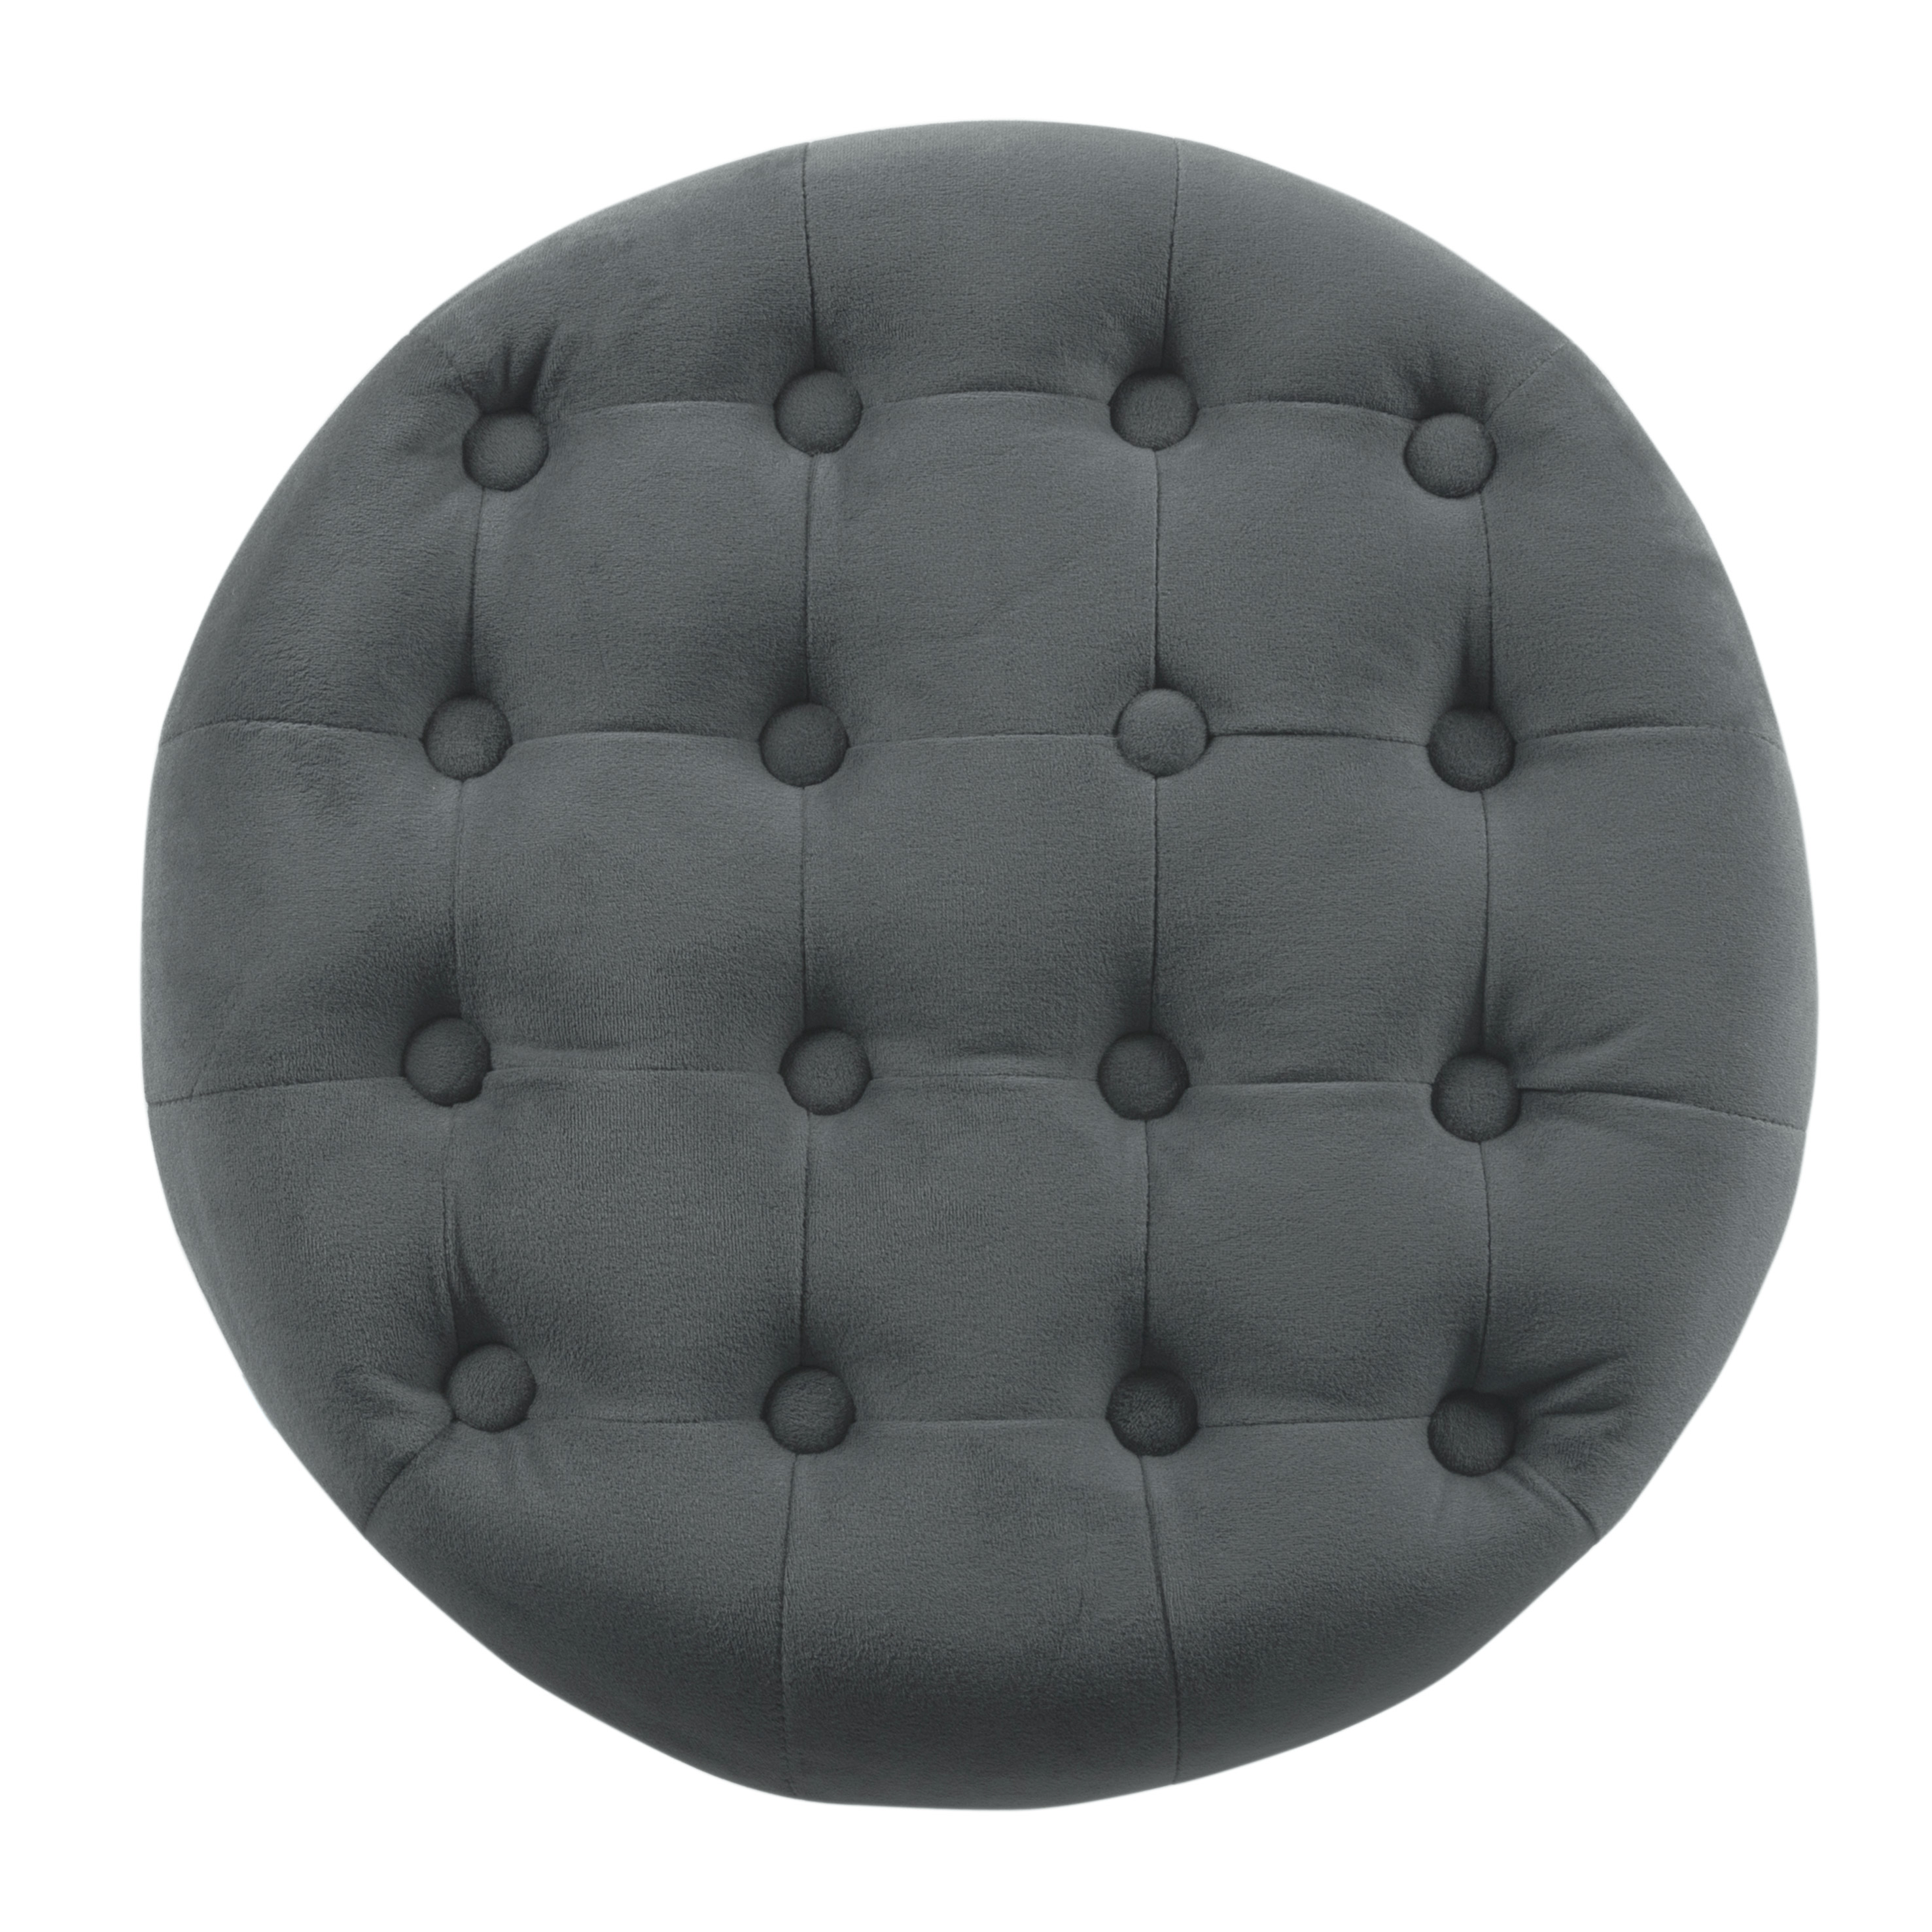 Admirable Homepop Tufted Round Ottoman With Storage Multiple Colors Theyellowbook Wood Chair Design Ideas Theyellowbookinfo